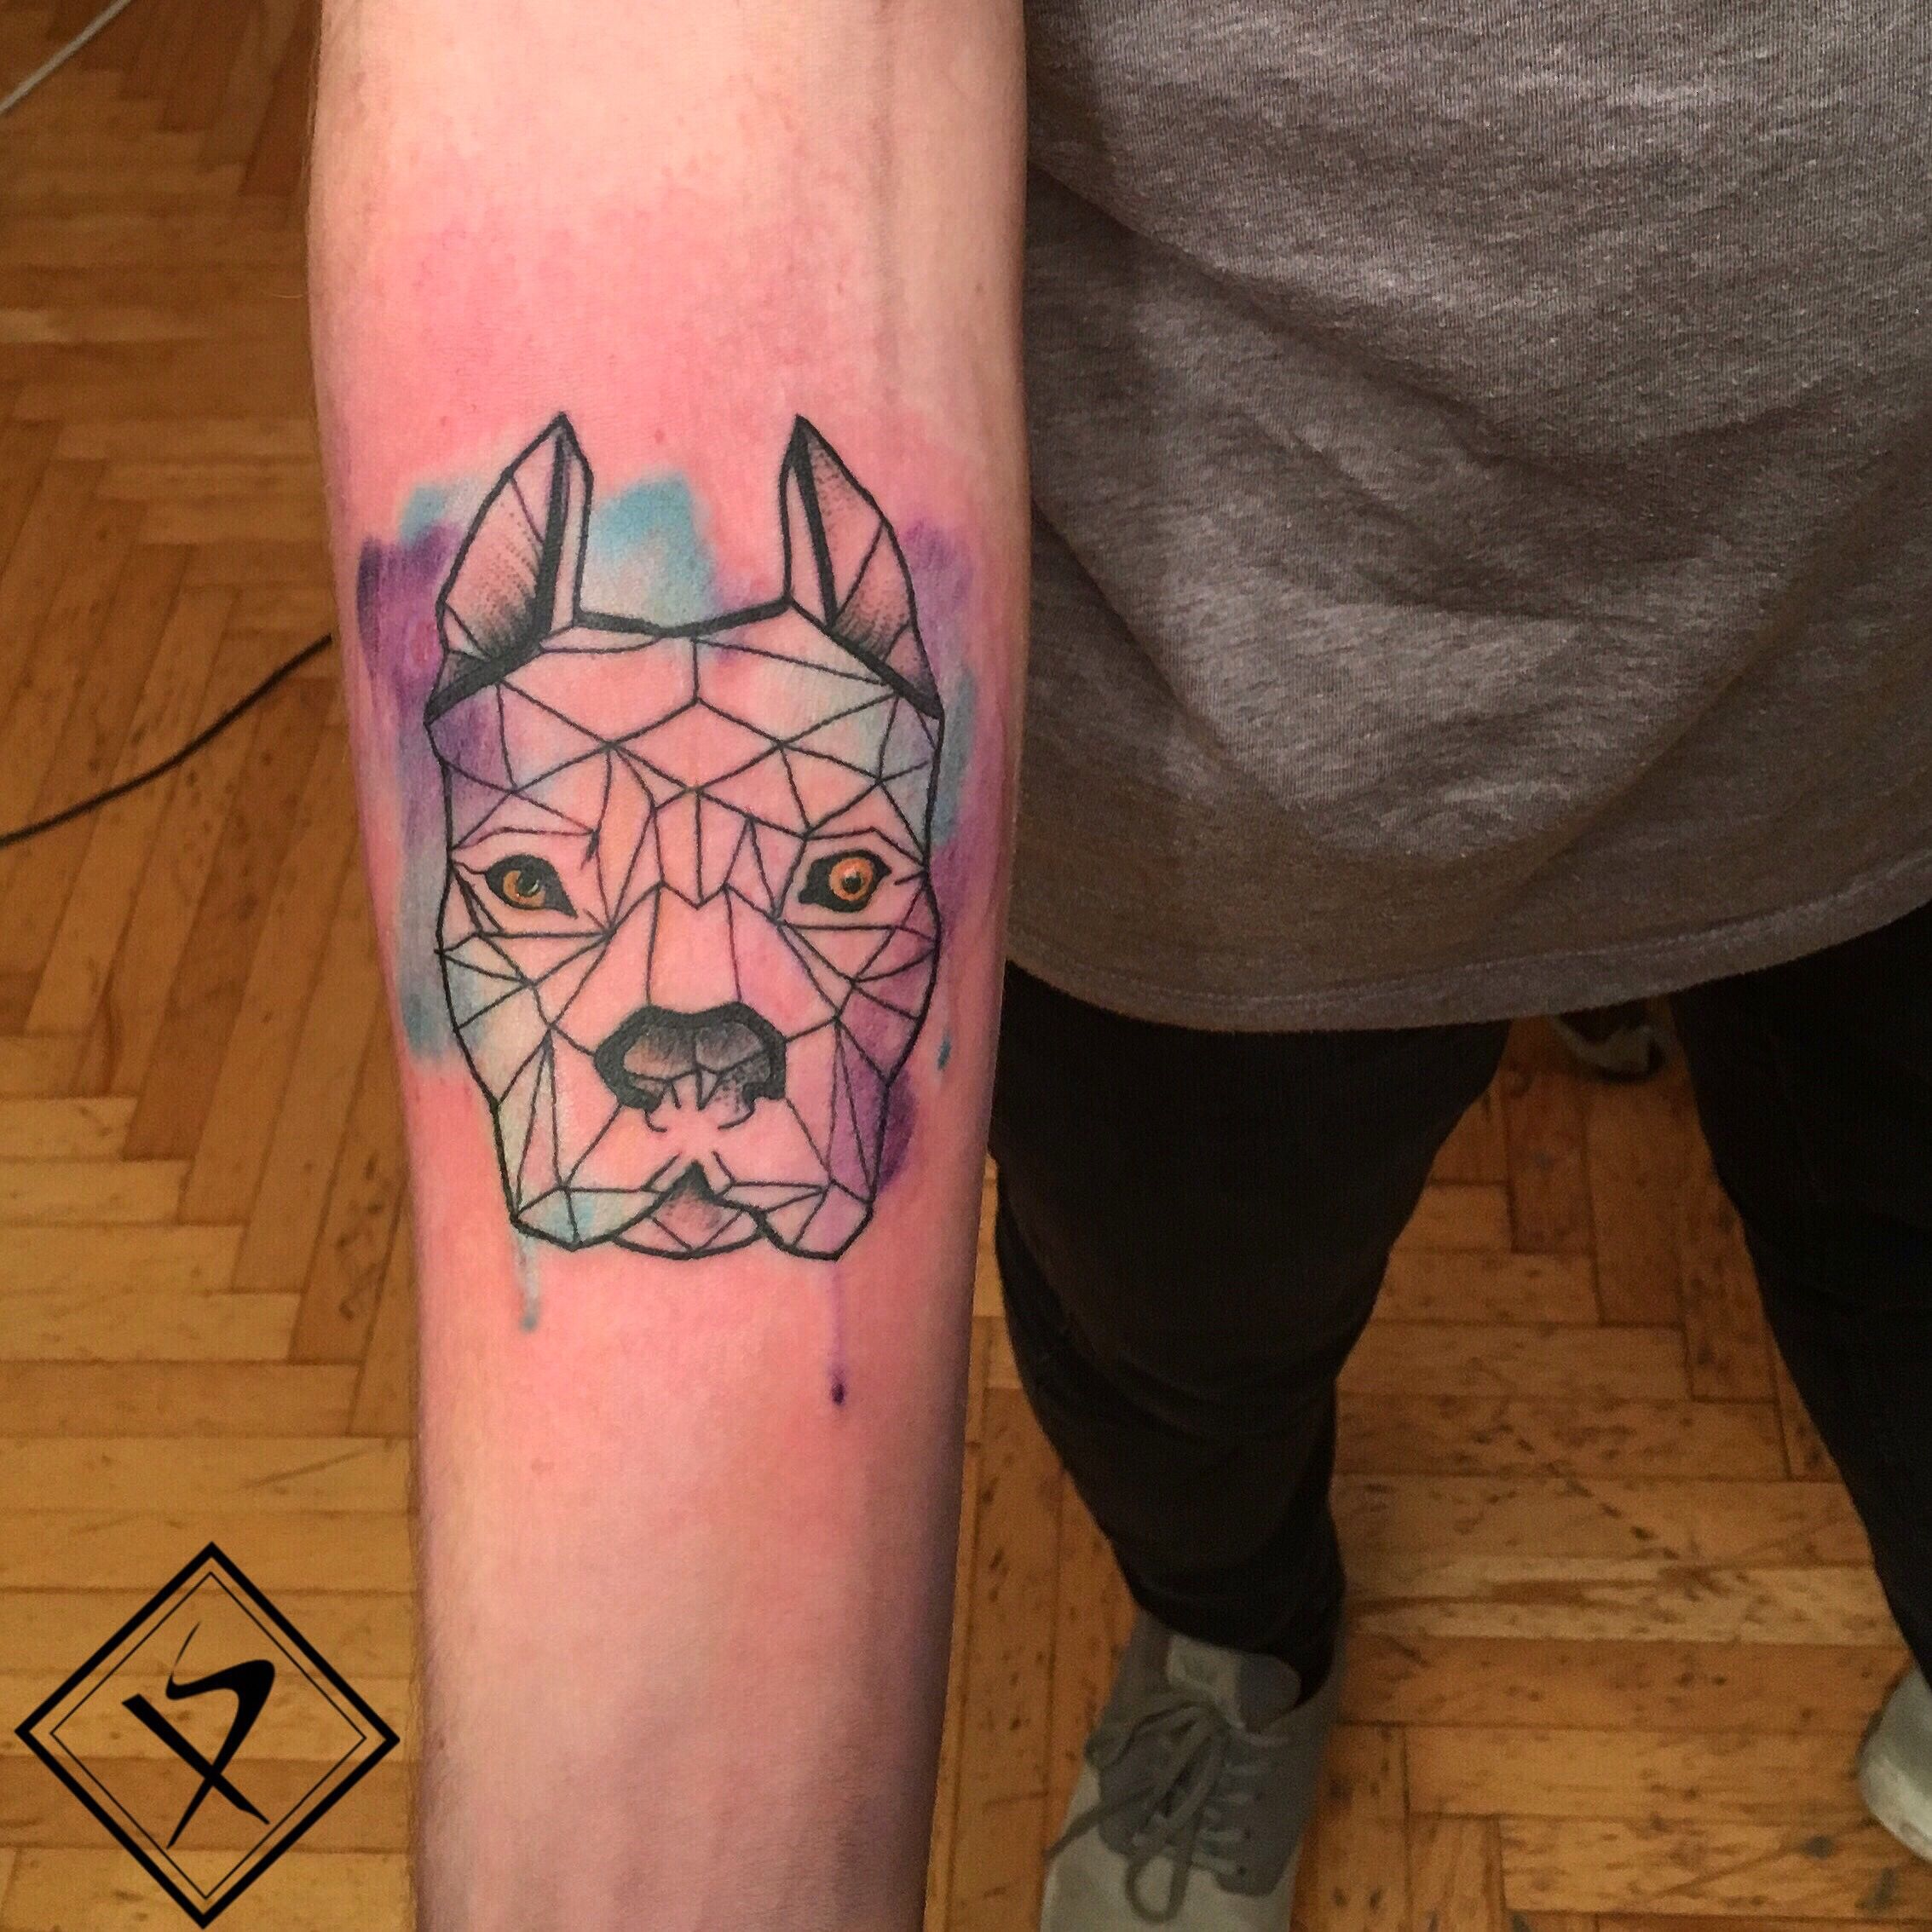 Dog Tattoo Pitbull Watercolor Geometric Tattoo Tattoos